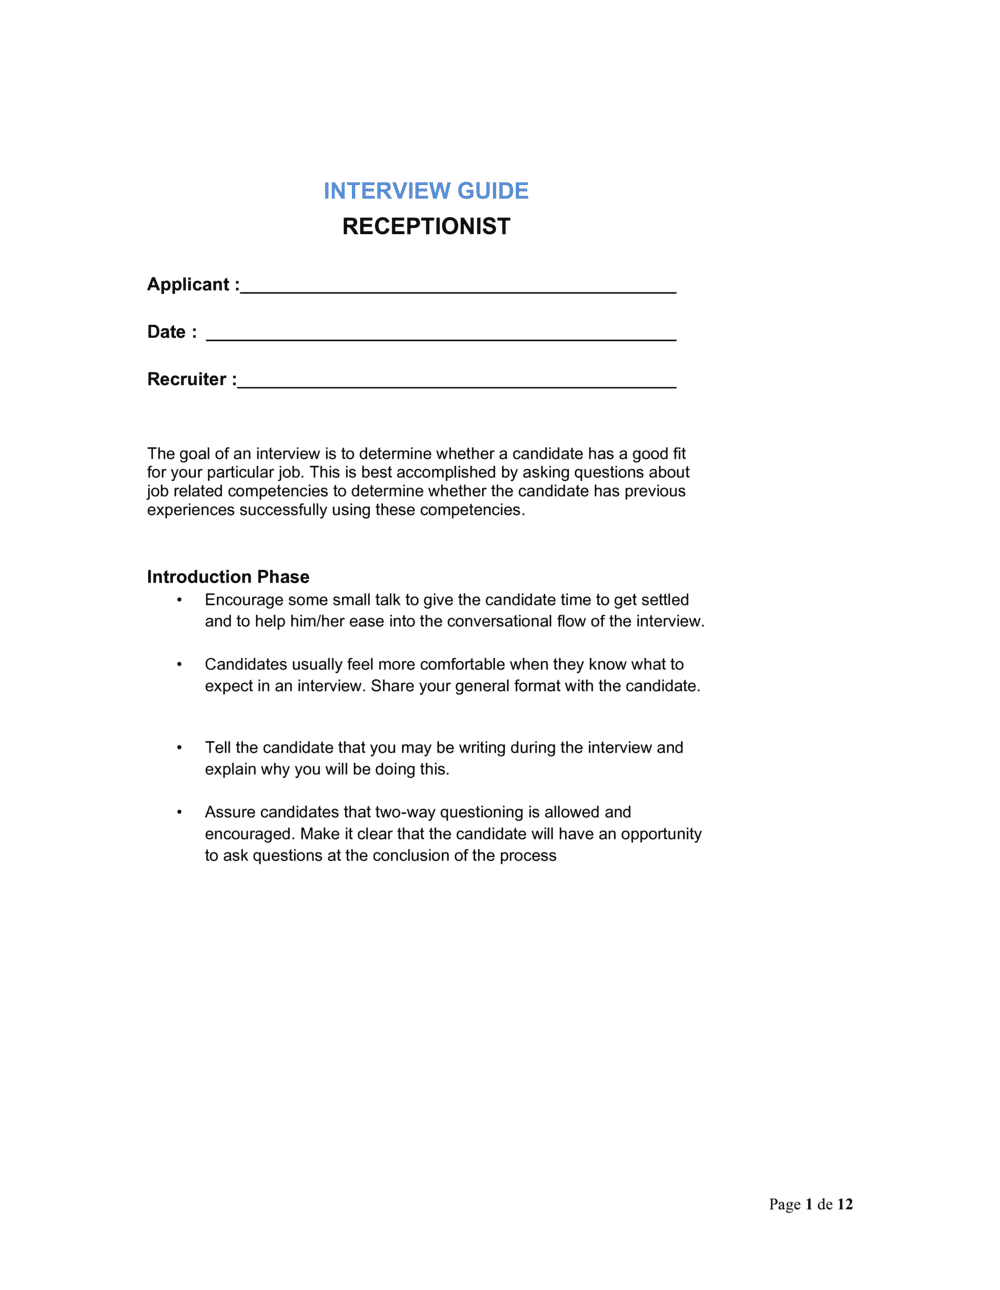 Business-in-a-Box's Interview Guide Receptionist Template